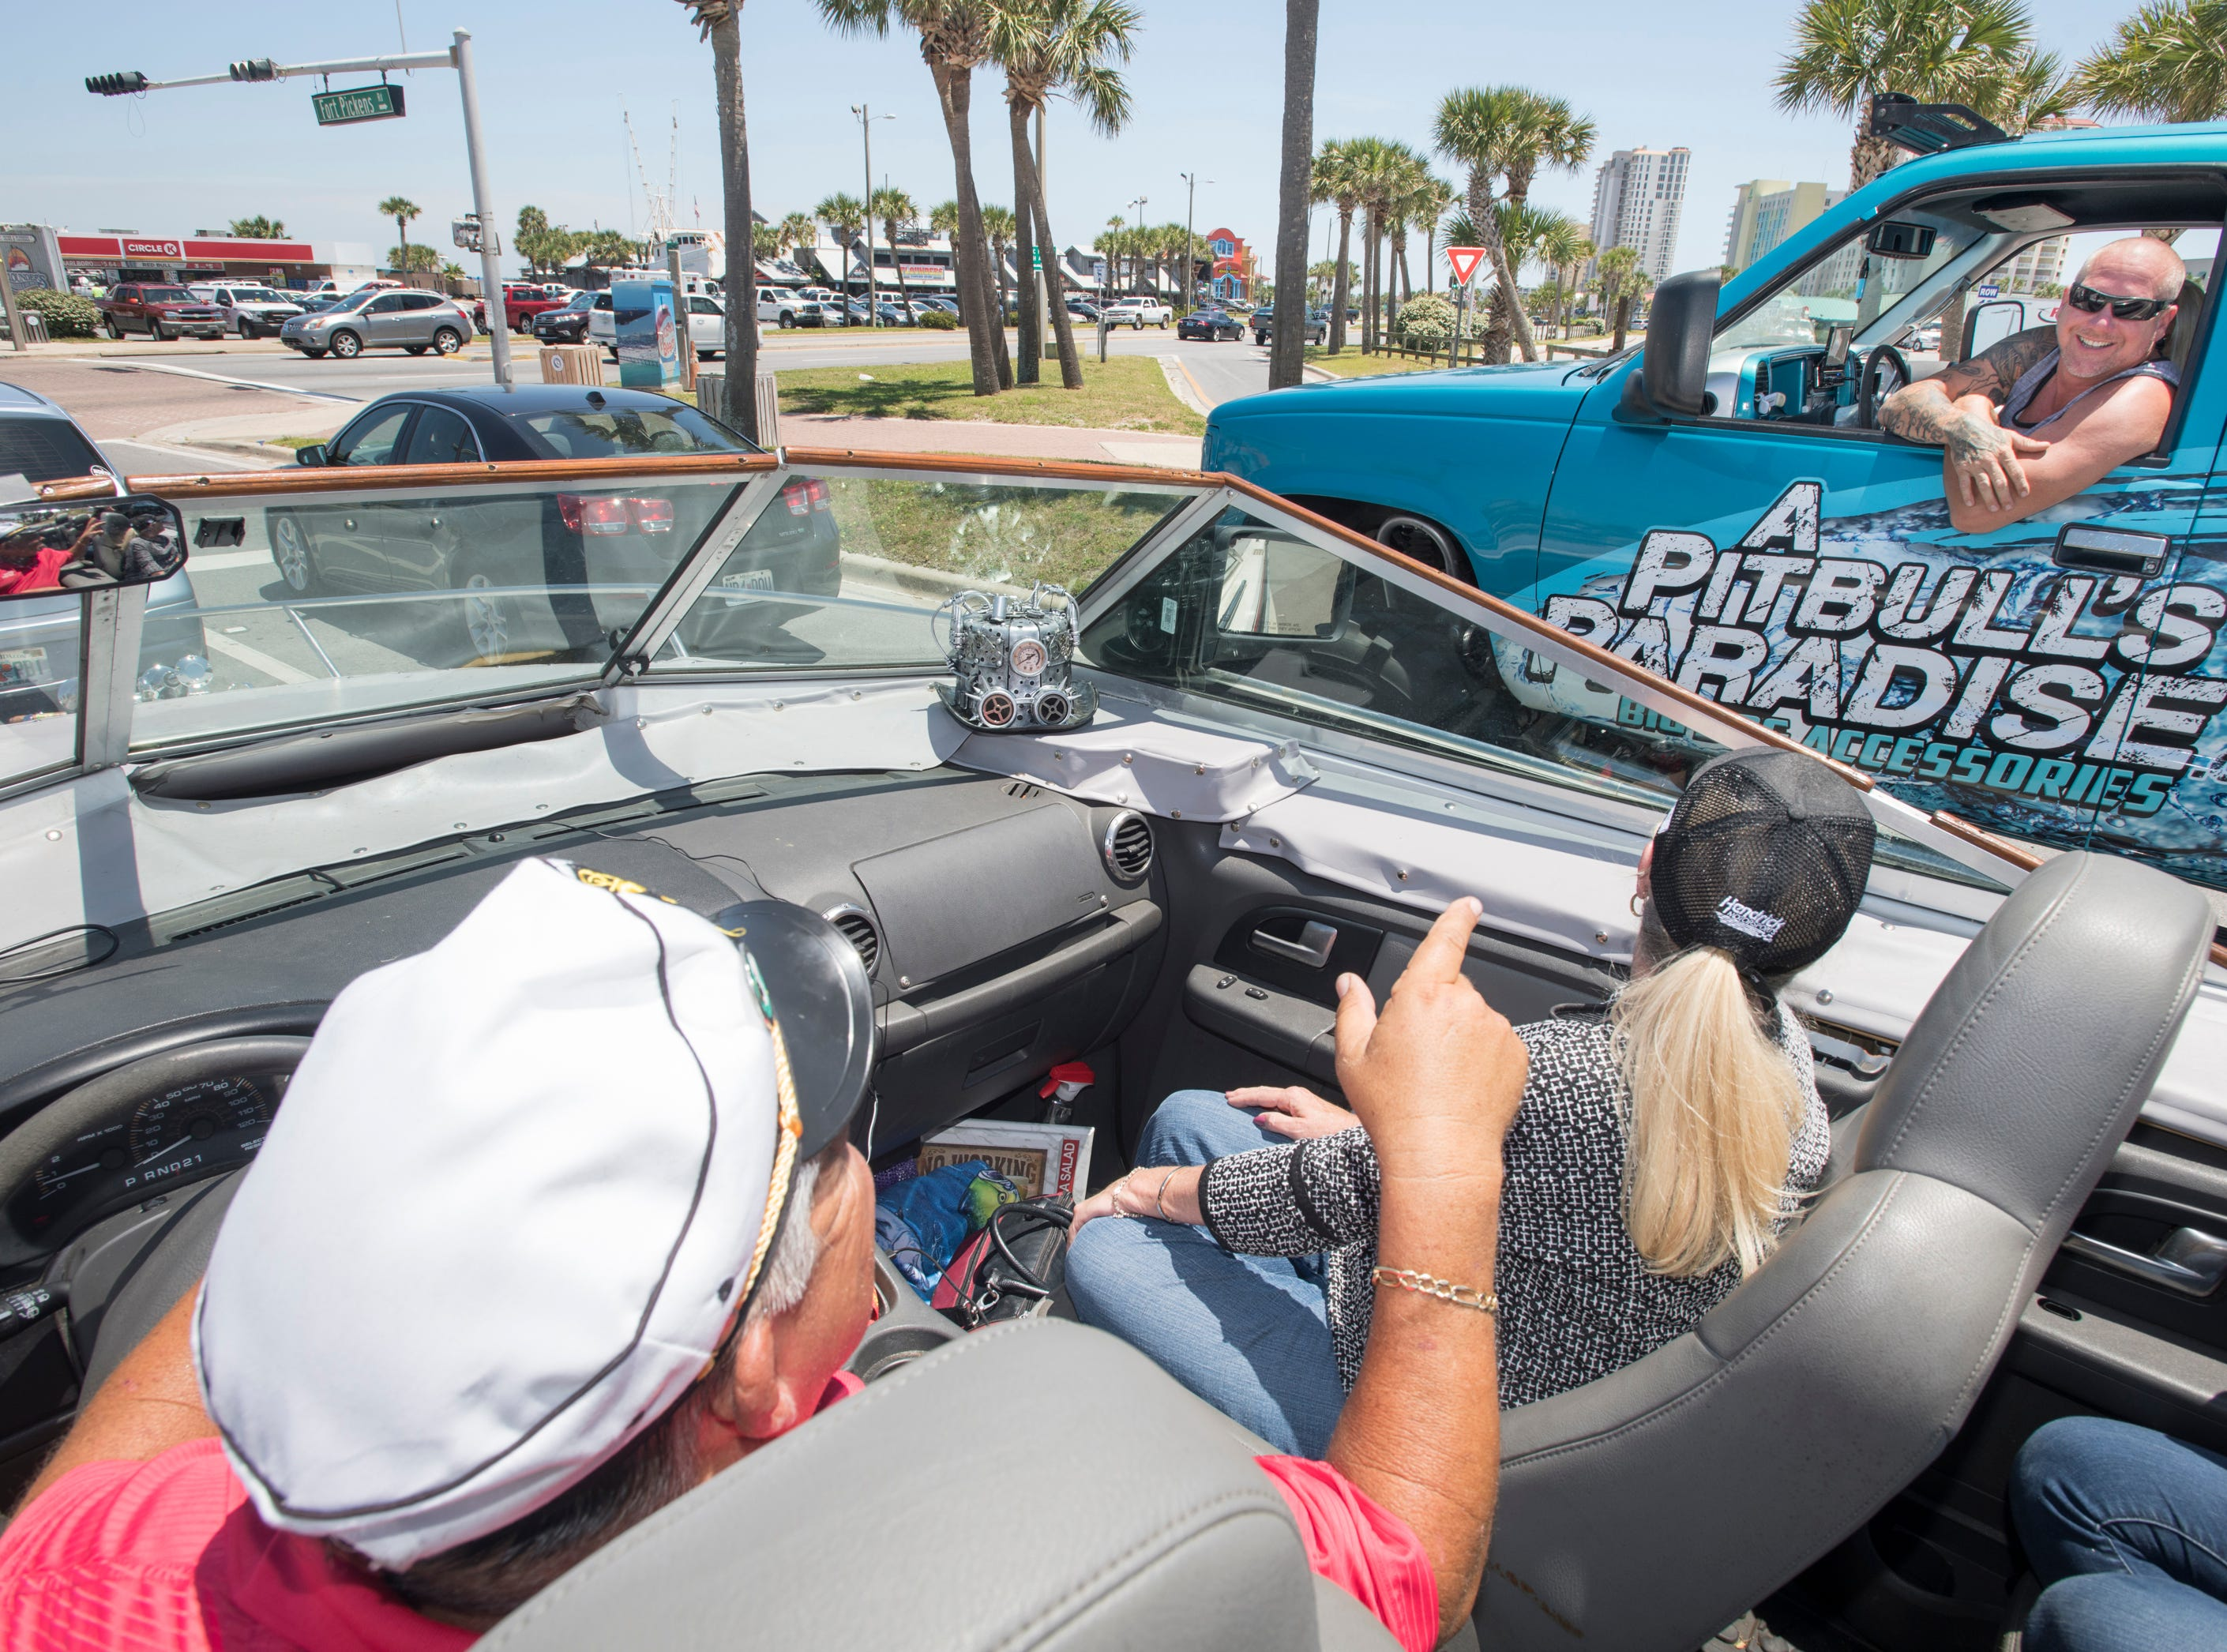 Gerry and Karen Moore chat with Tim Vaughn, right, about their Boat Car while stopped at a red light  in Pensacola Beach on Tuesday, May 7, 2019.  The vehicle is a 1986 Chris Craft 210 Scorpion boat - 2003 Ford Expedition SUV hybrid created by Gerry.